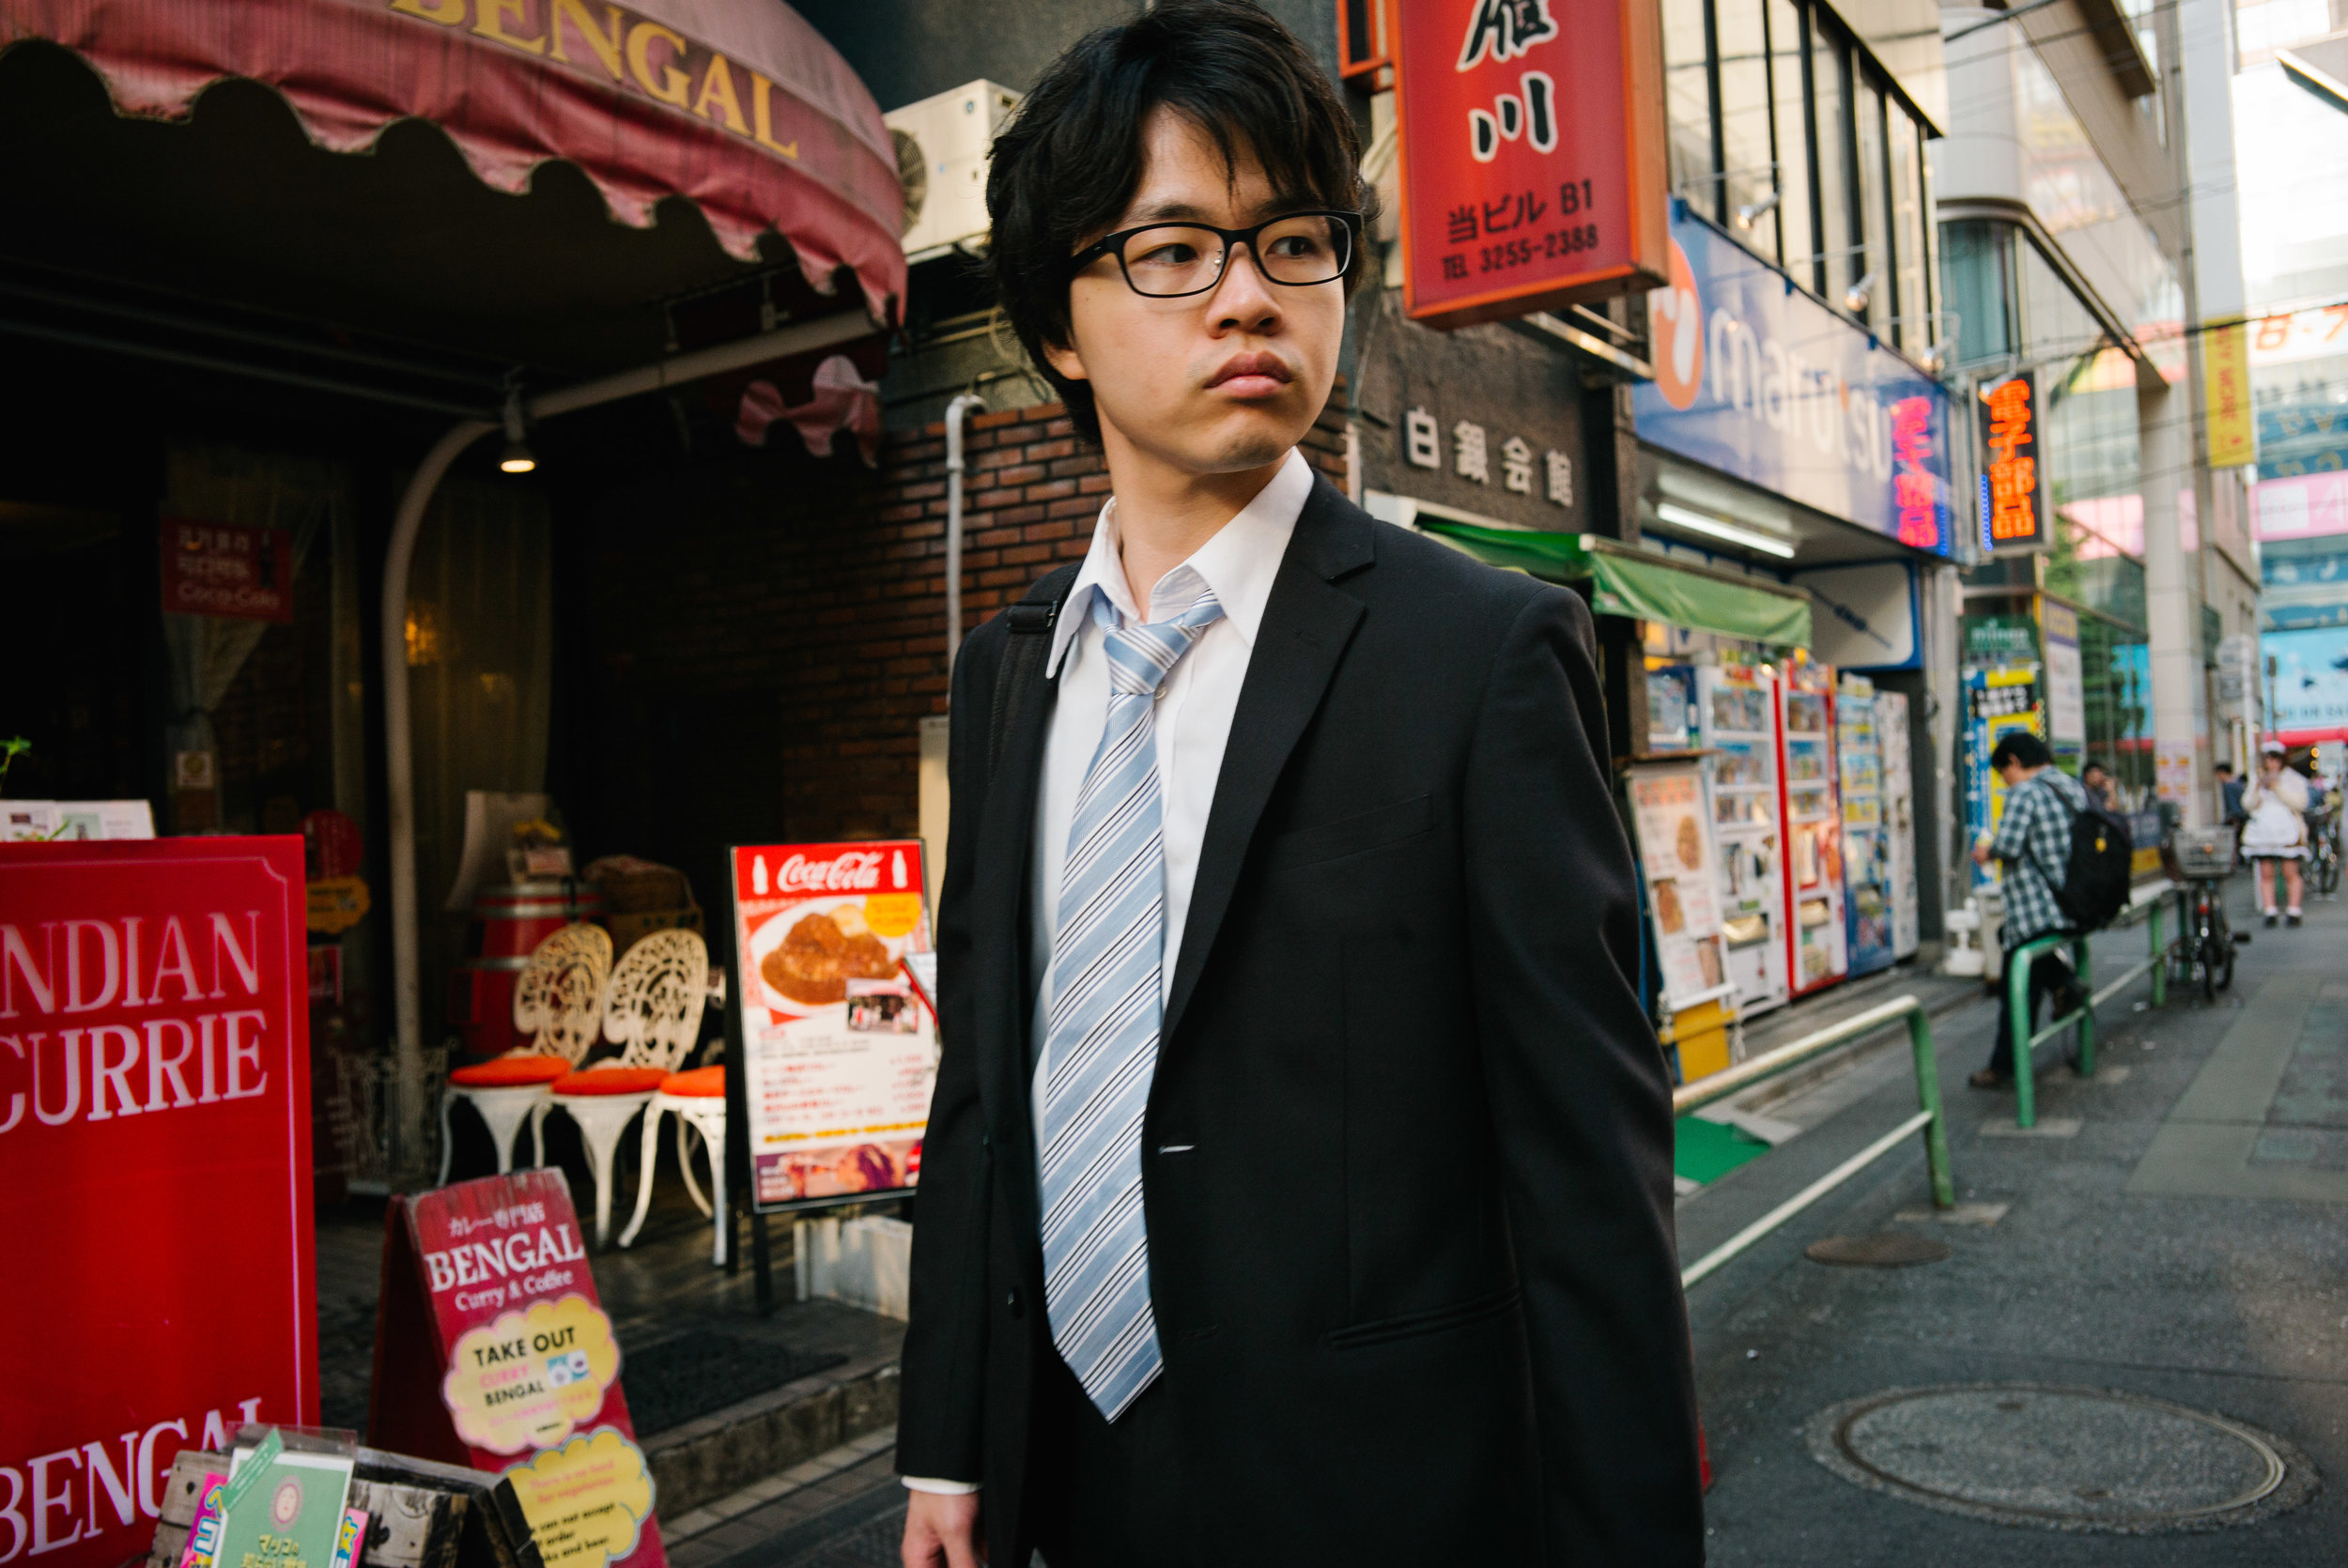 Japan's 'salarymen' are expected to work long hours, they are taught to work for the good of the whole society rather than just the individual and to value work above all else. Tokyo. Japan. 2017.